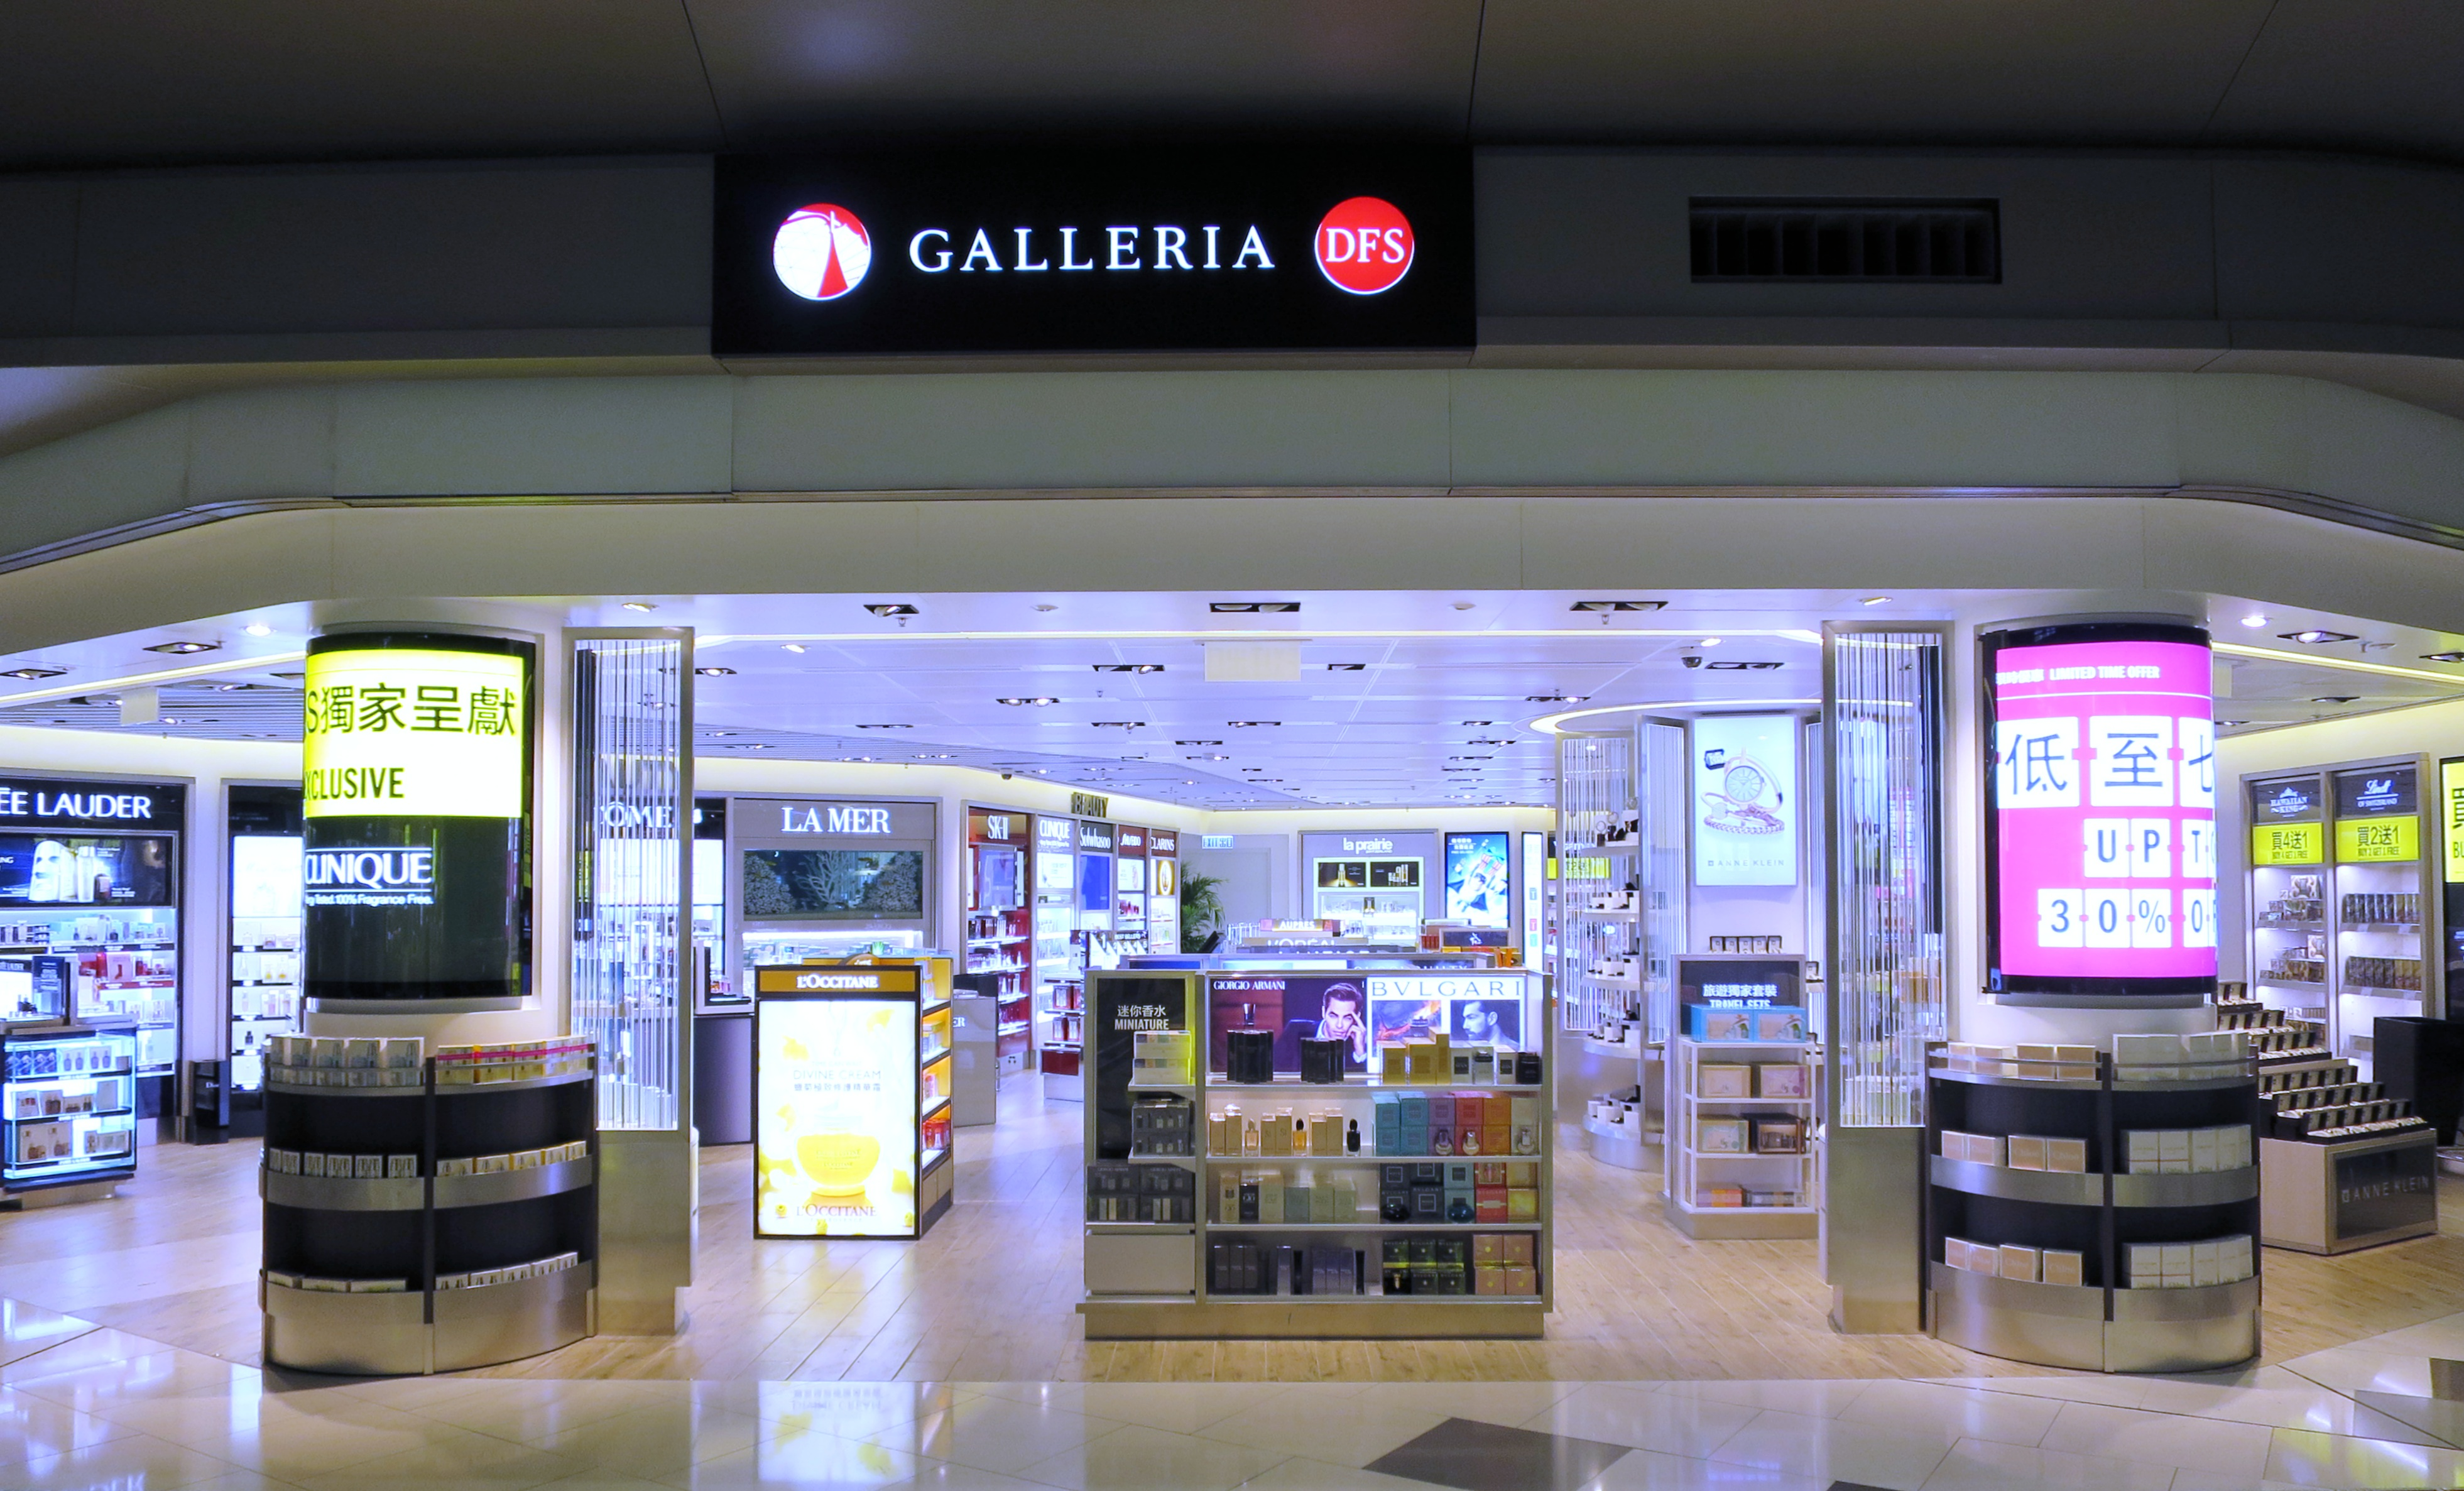 Dfs Unveils New Hong Kong Midfield Concourse Stores